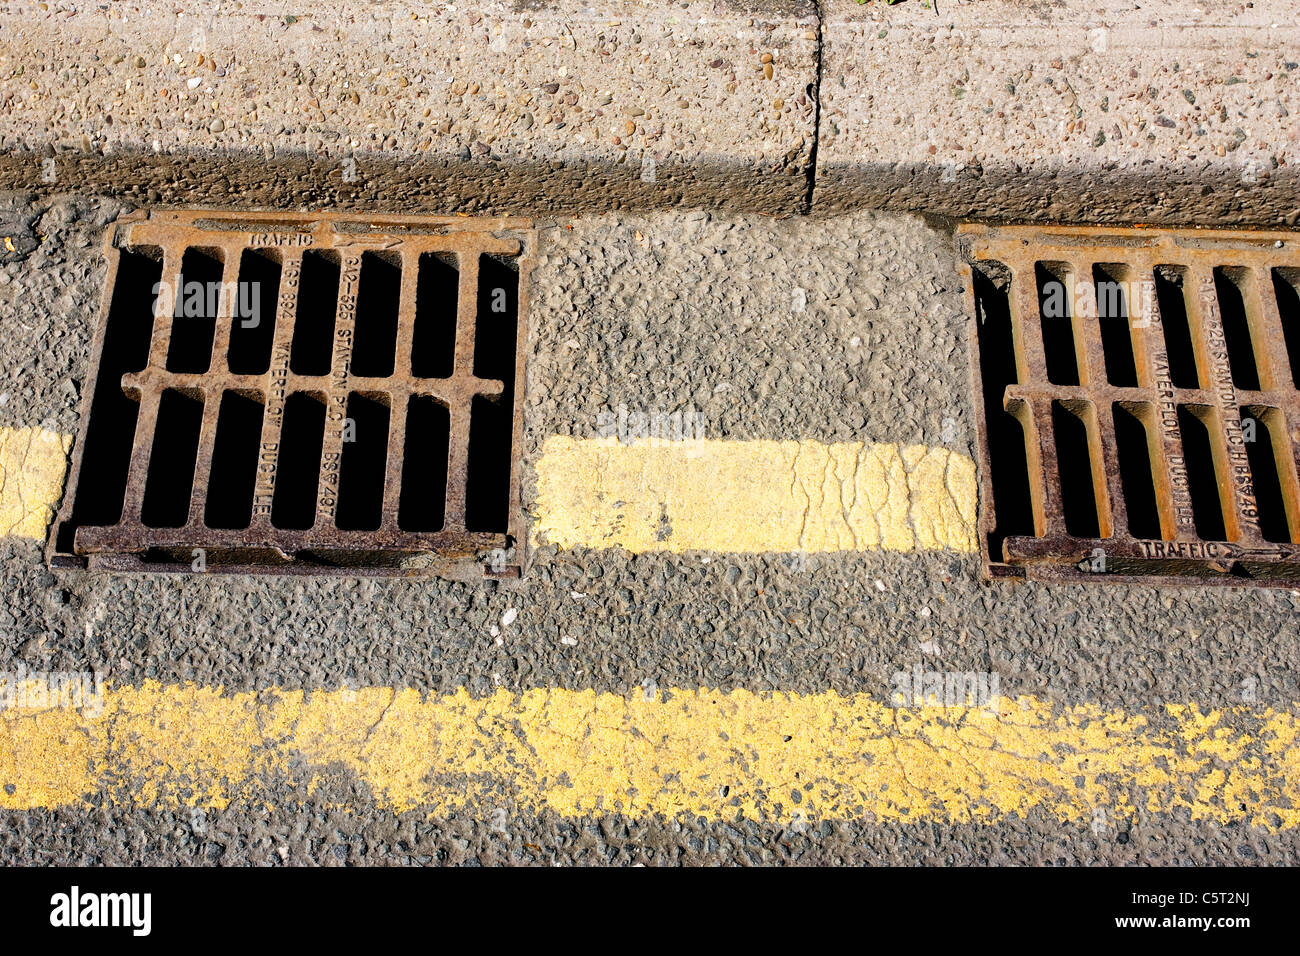 Water drains at the side of a road - Stock Image